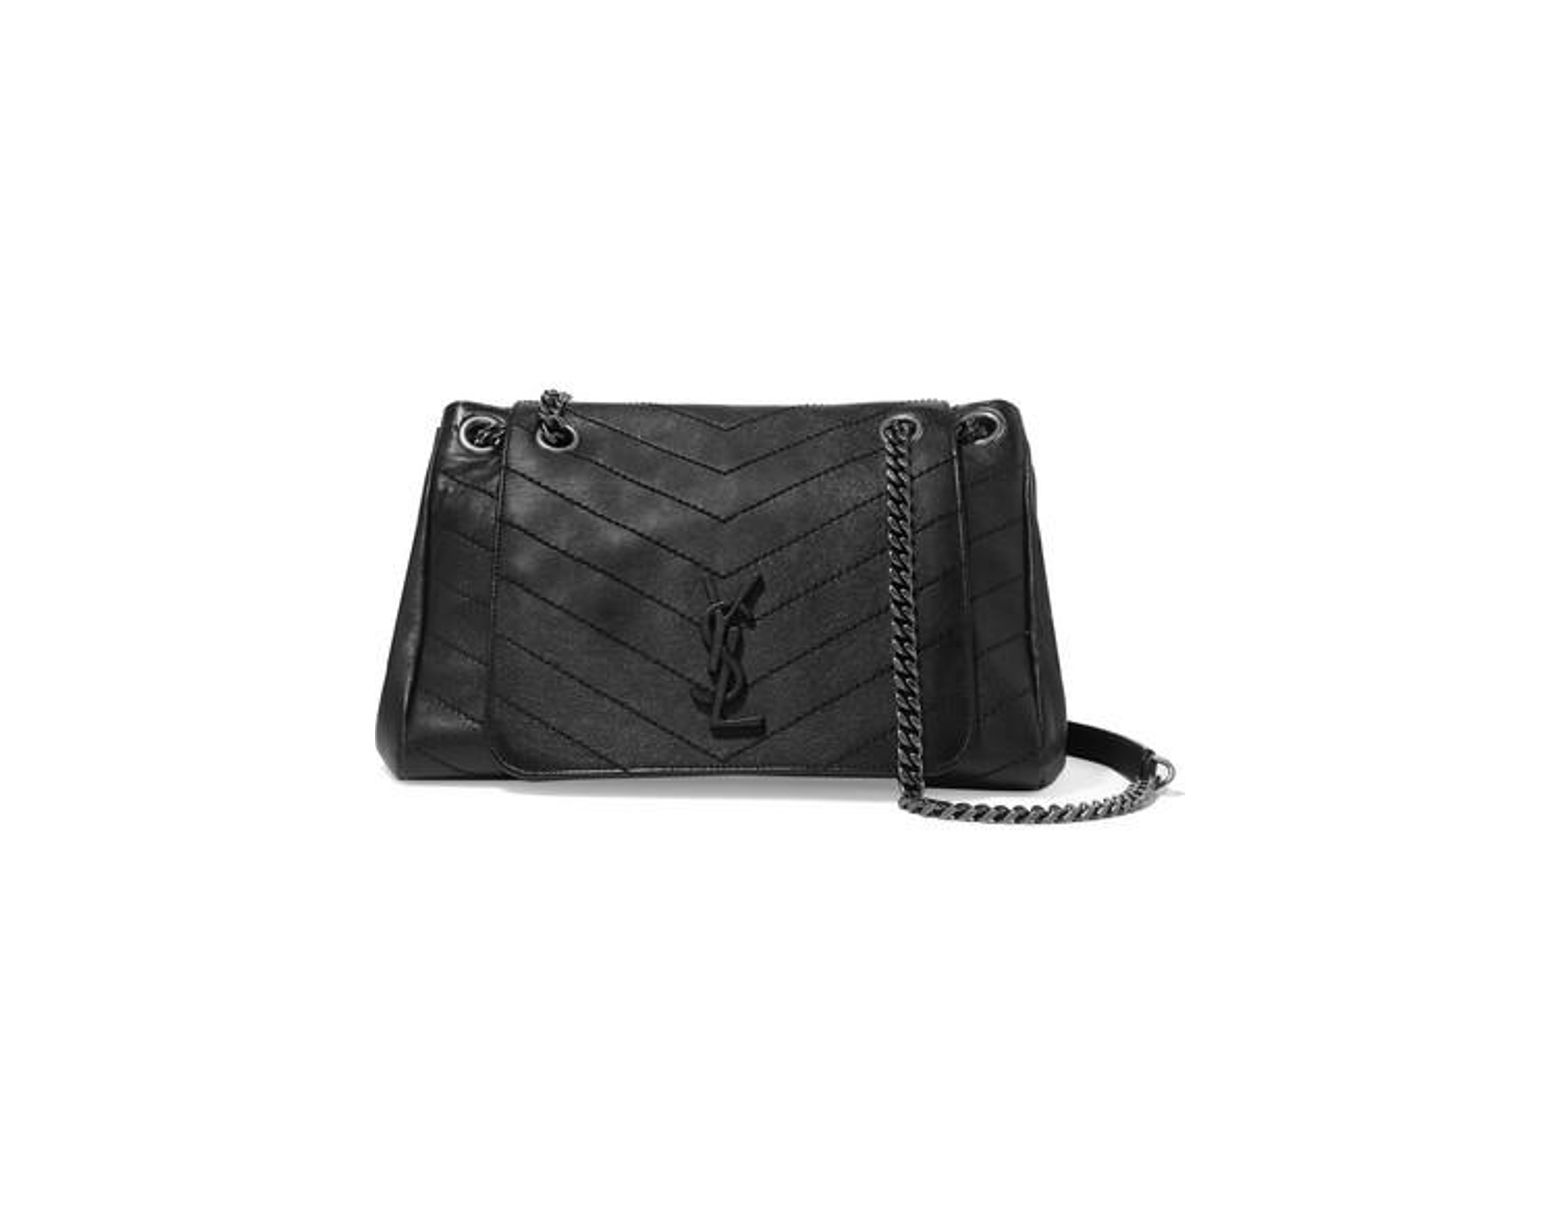 ee868ed9a7e Saint Laurent Nolita Large Quilted Leather Shoulder Bag in Black - Lyst